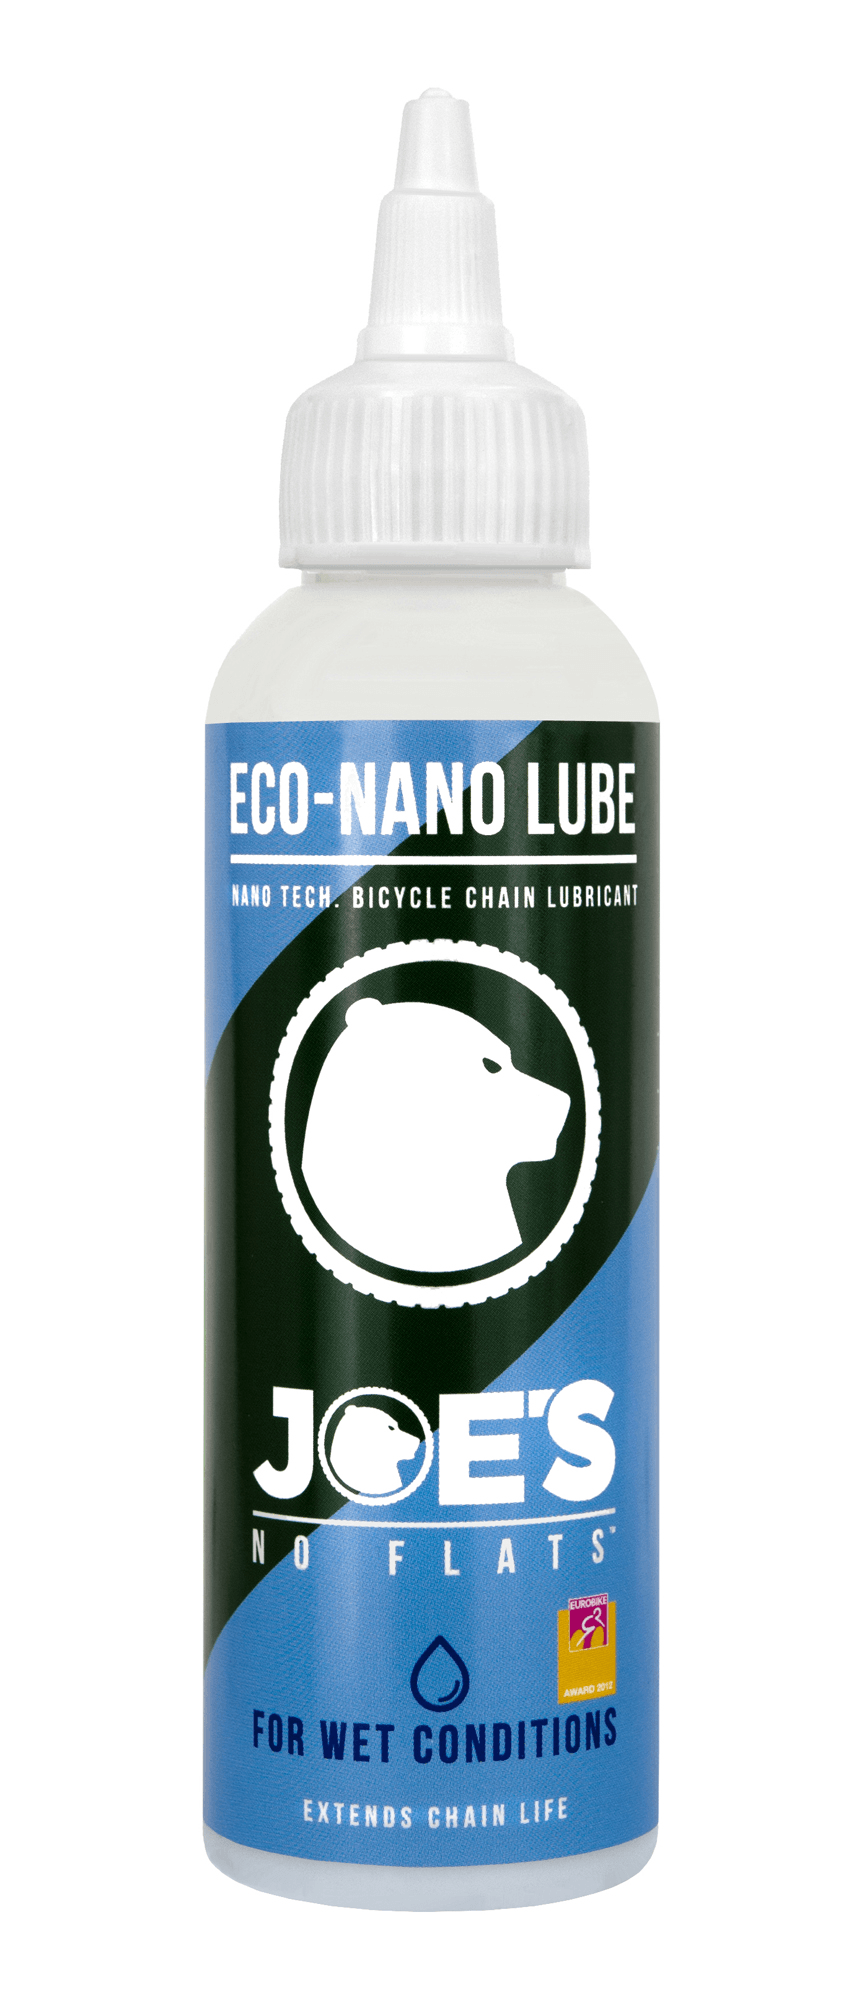 Joe's No Flats Eco-Nano Lube 100 ML Wet Lube | polish_and_lubricant_component